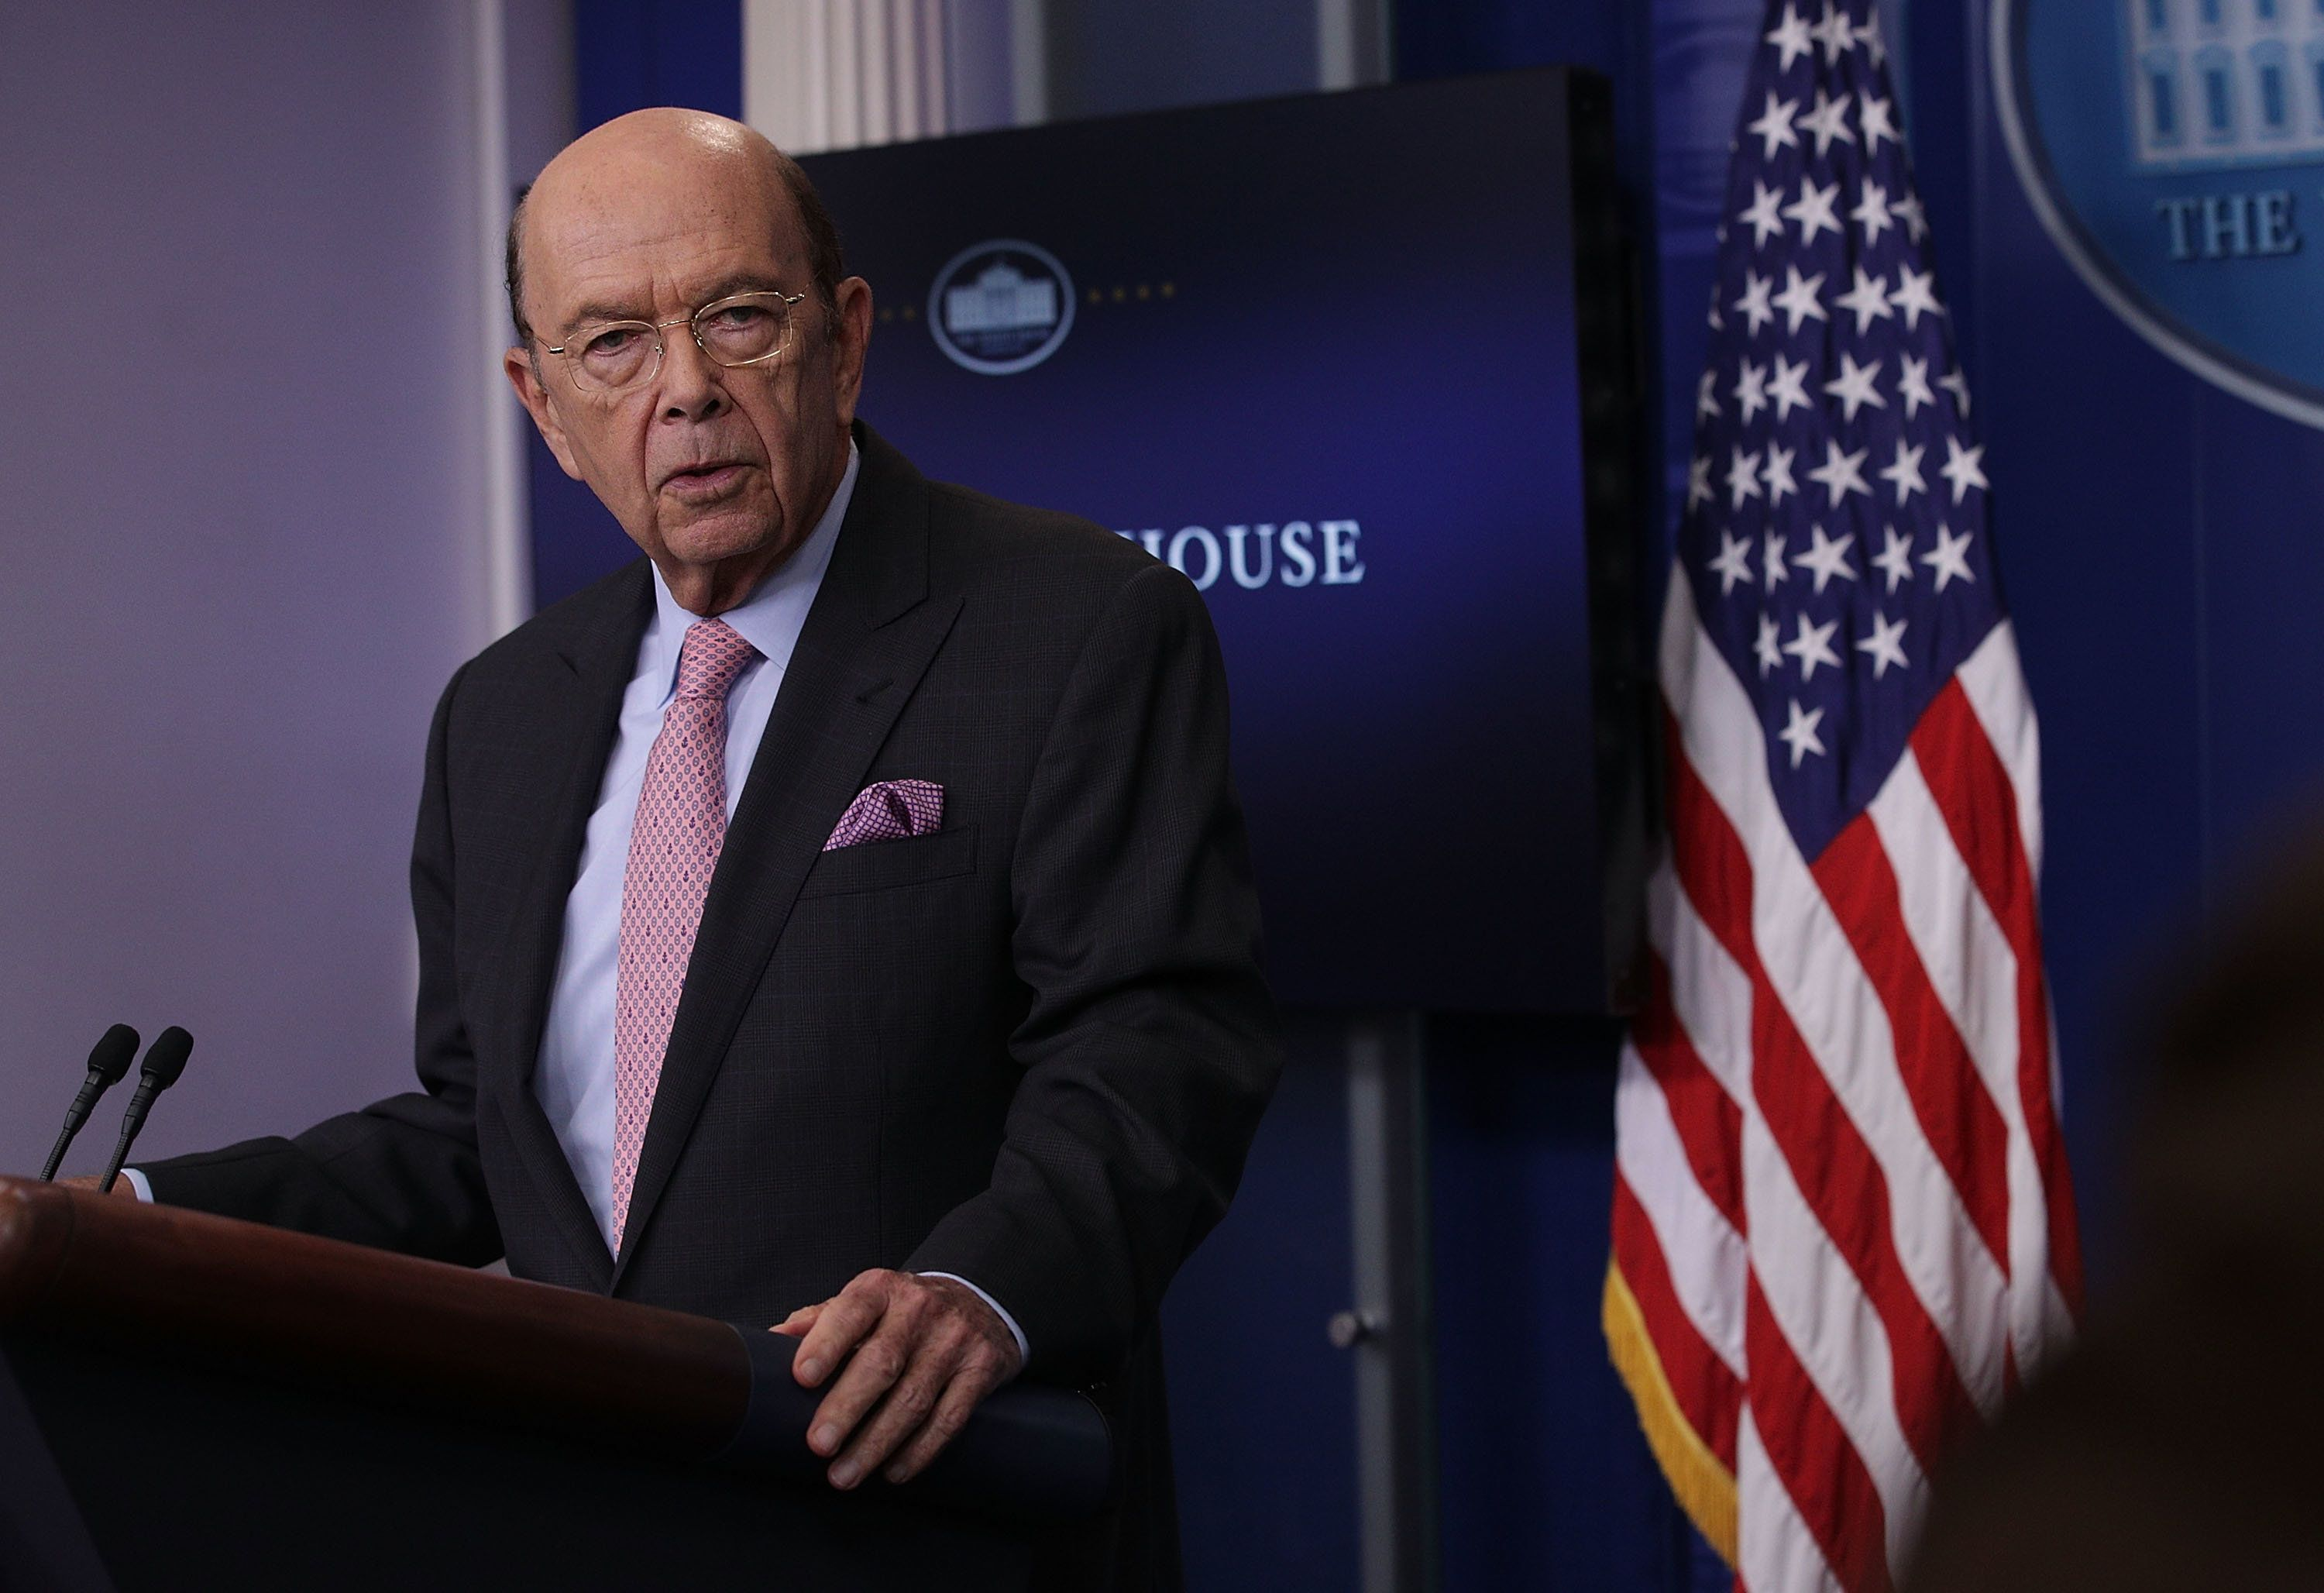 WASHINGTON, DC - APRIL 25:  U.S. Secretary of Commerce Wilbur Ross discusses the new U.S. tariff on Canadian softwood lumber during the White House daily briefing at the James Brady Press Briefing Room at the White House April 25, 2017 in Washington, DC. White House Press Secretary Sean Spicer held his daily briefing to answer questions from members of the media.  (Photo by Alex Wong/Getty Images)